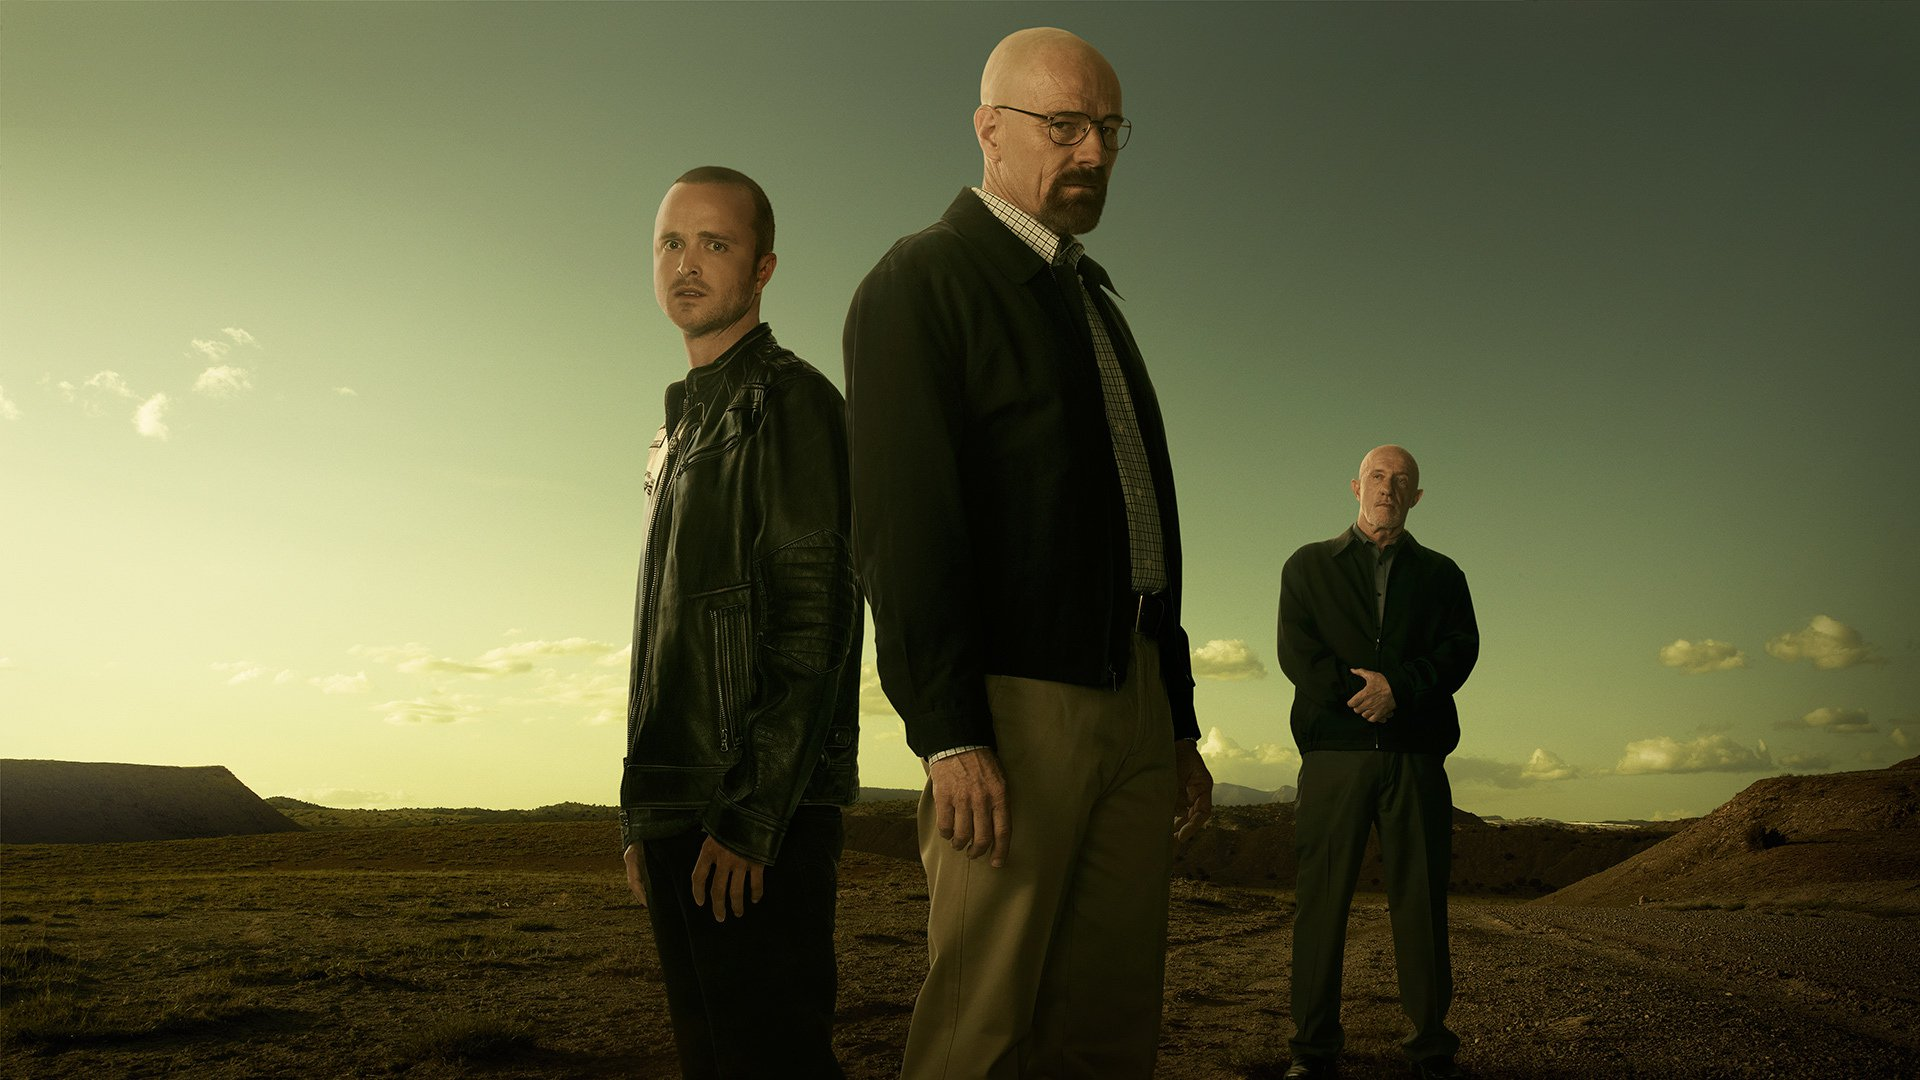 Breaking Bad Backgrounds, Pictures, Images